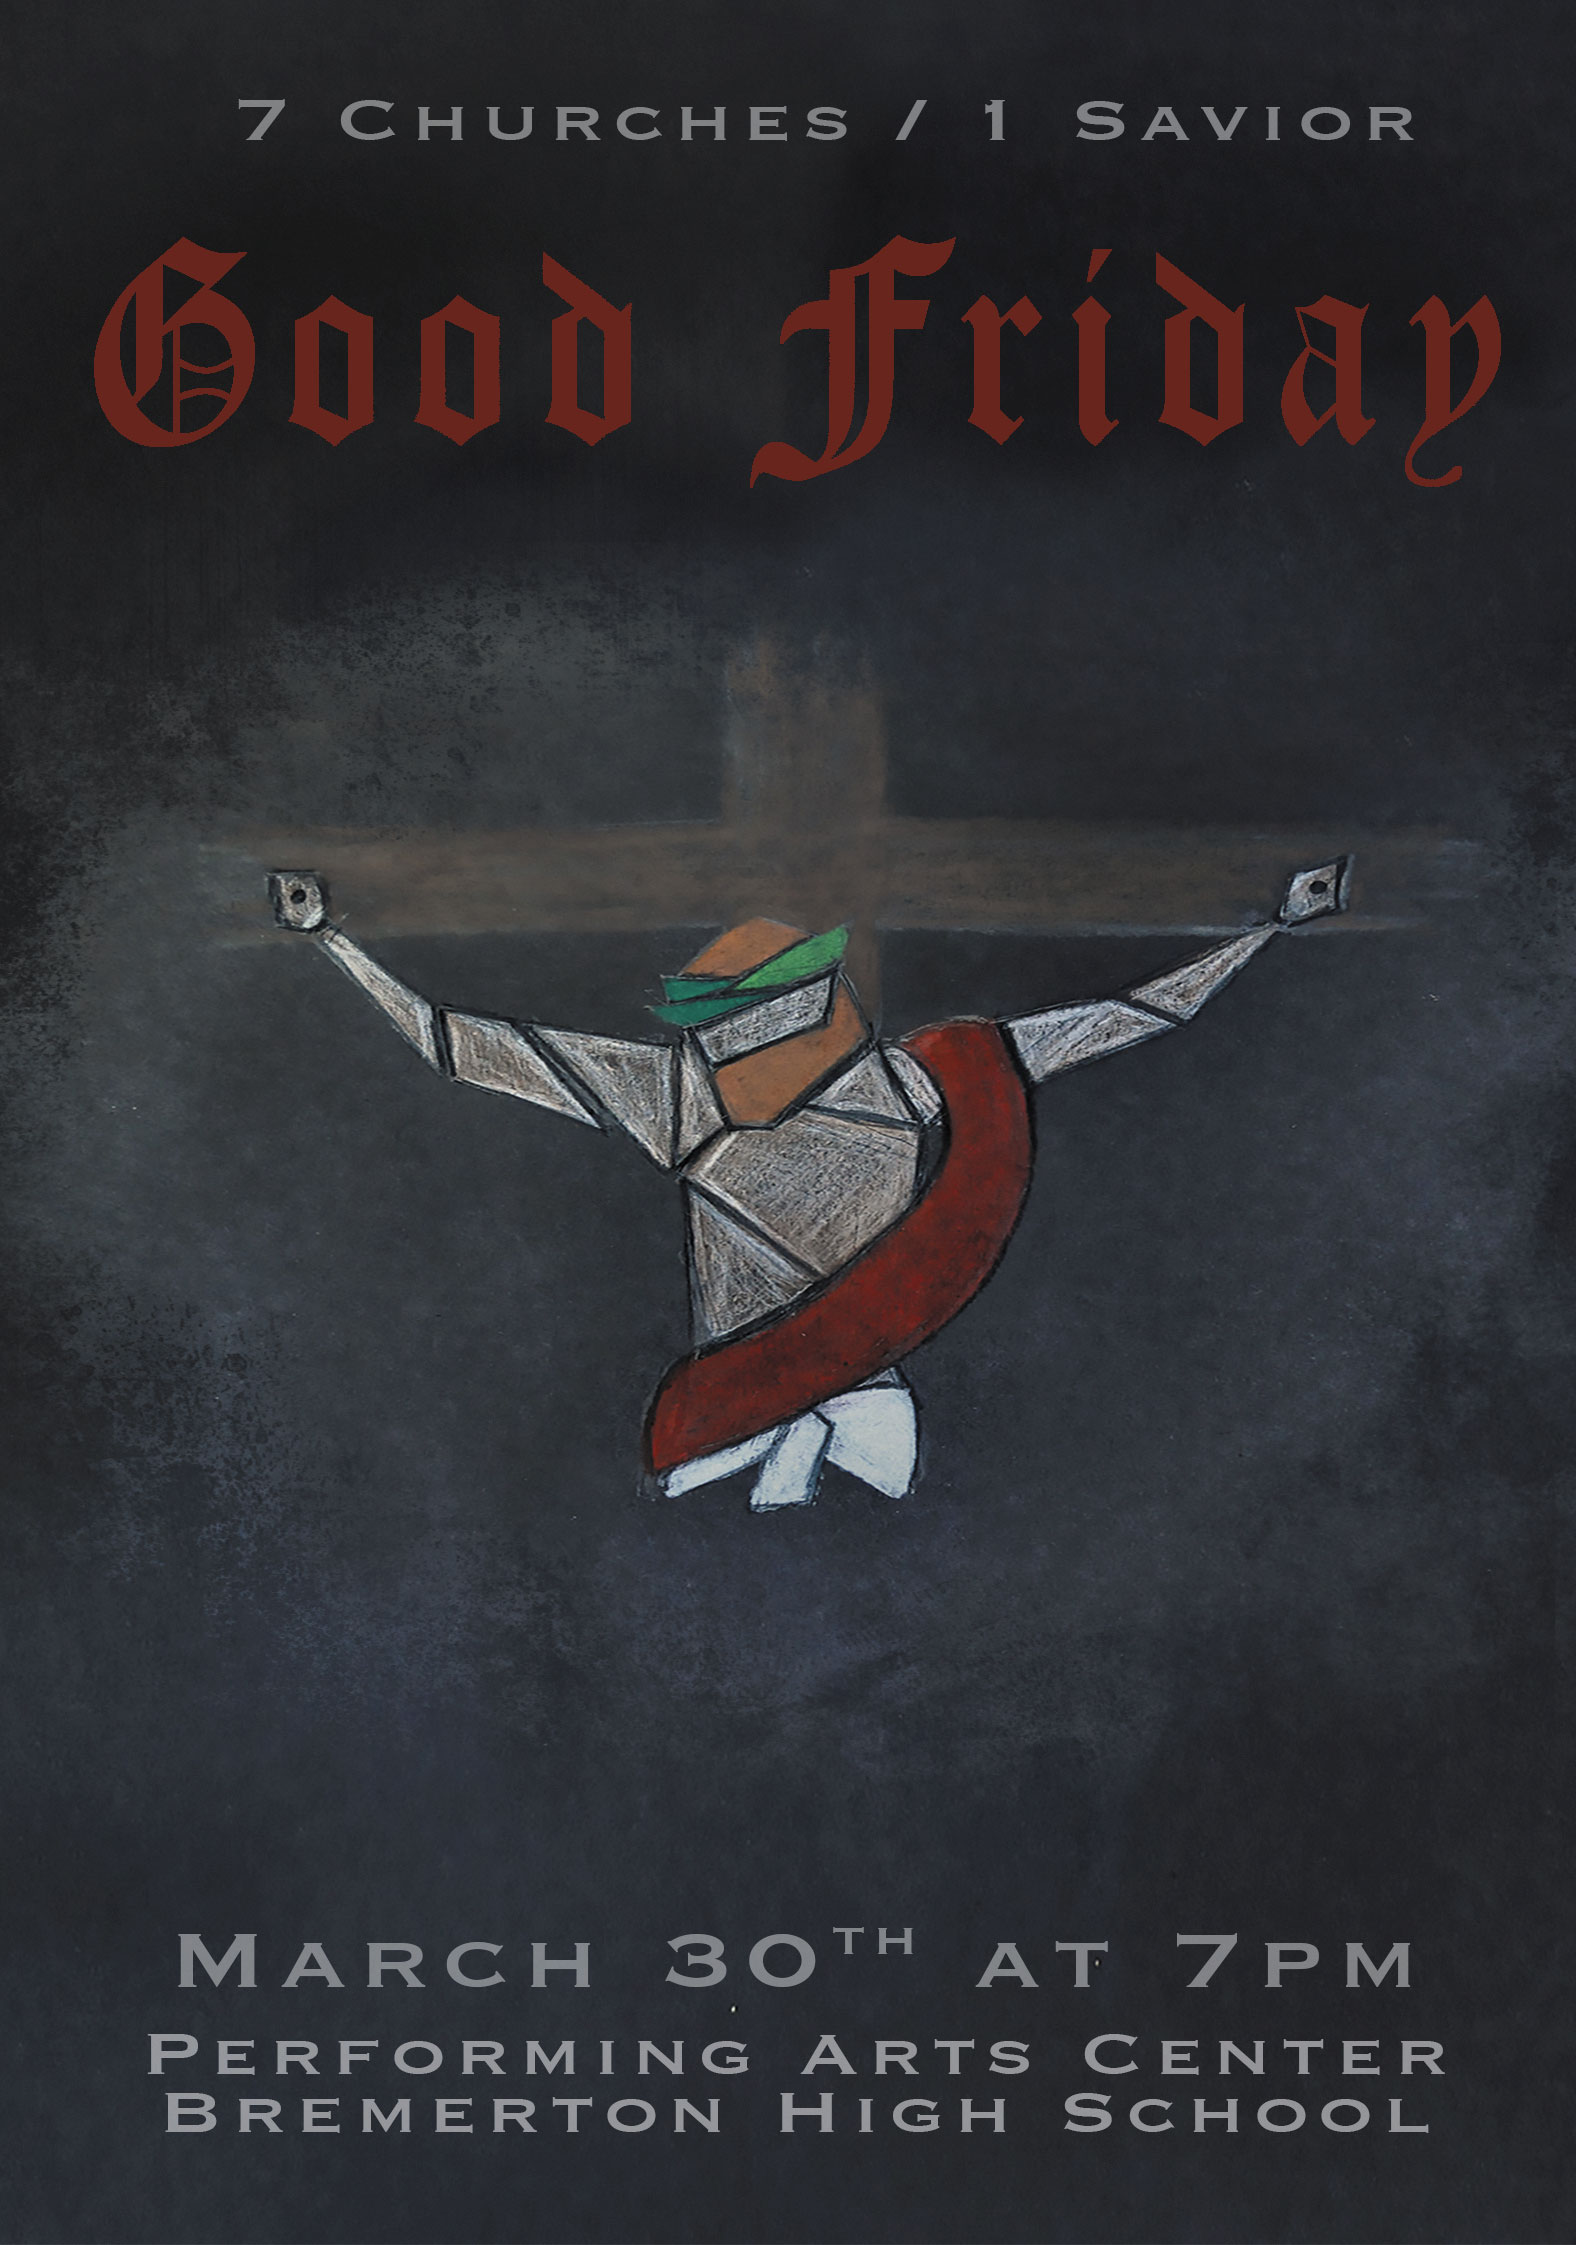 Good Friday Service—March 30